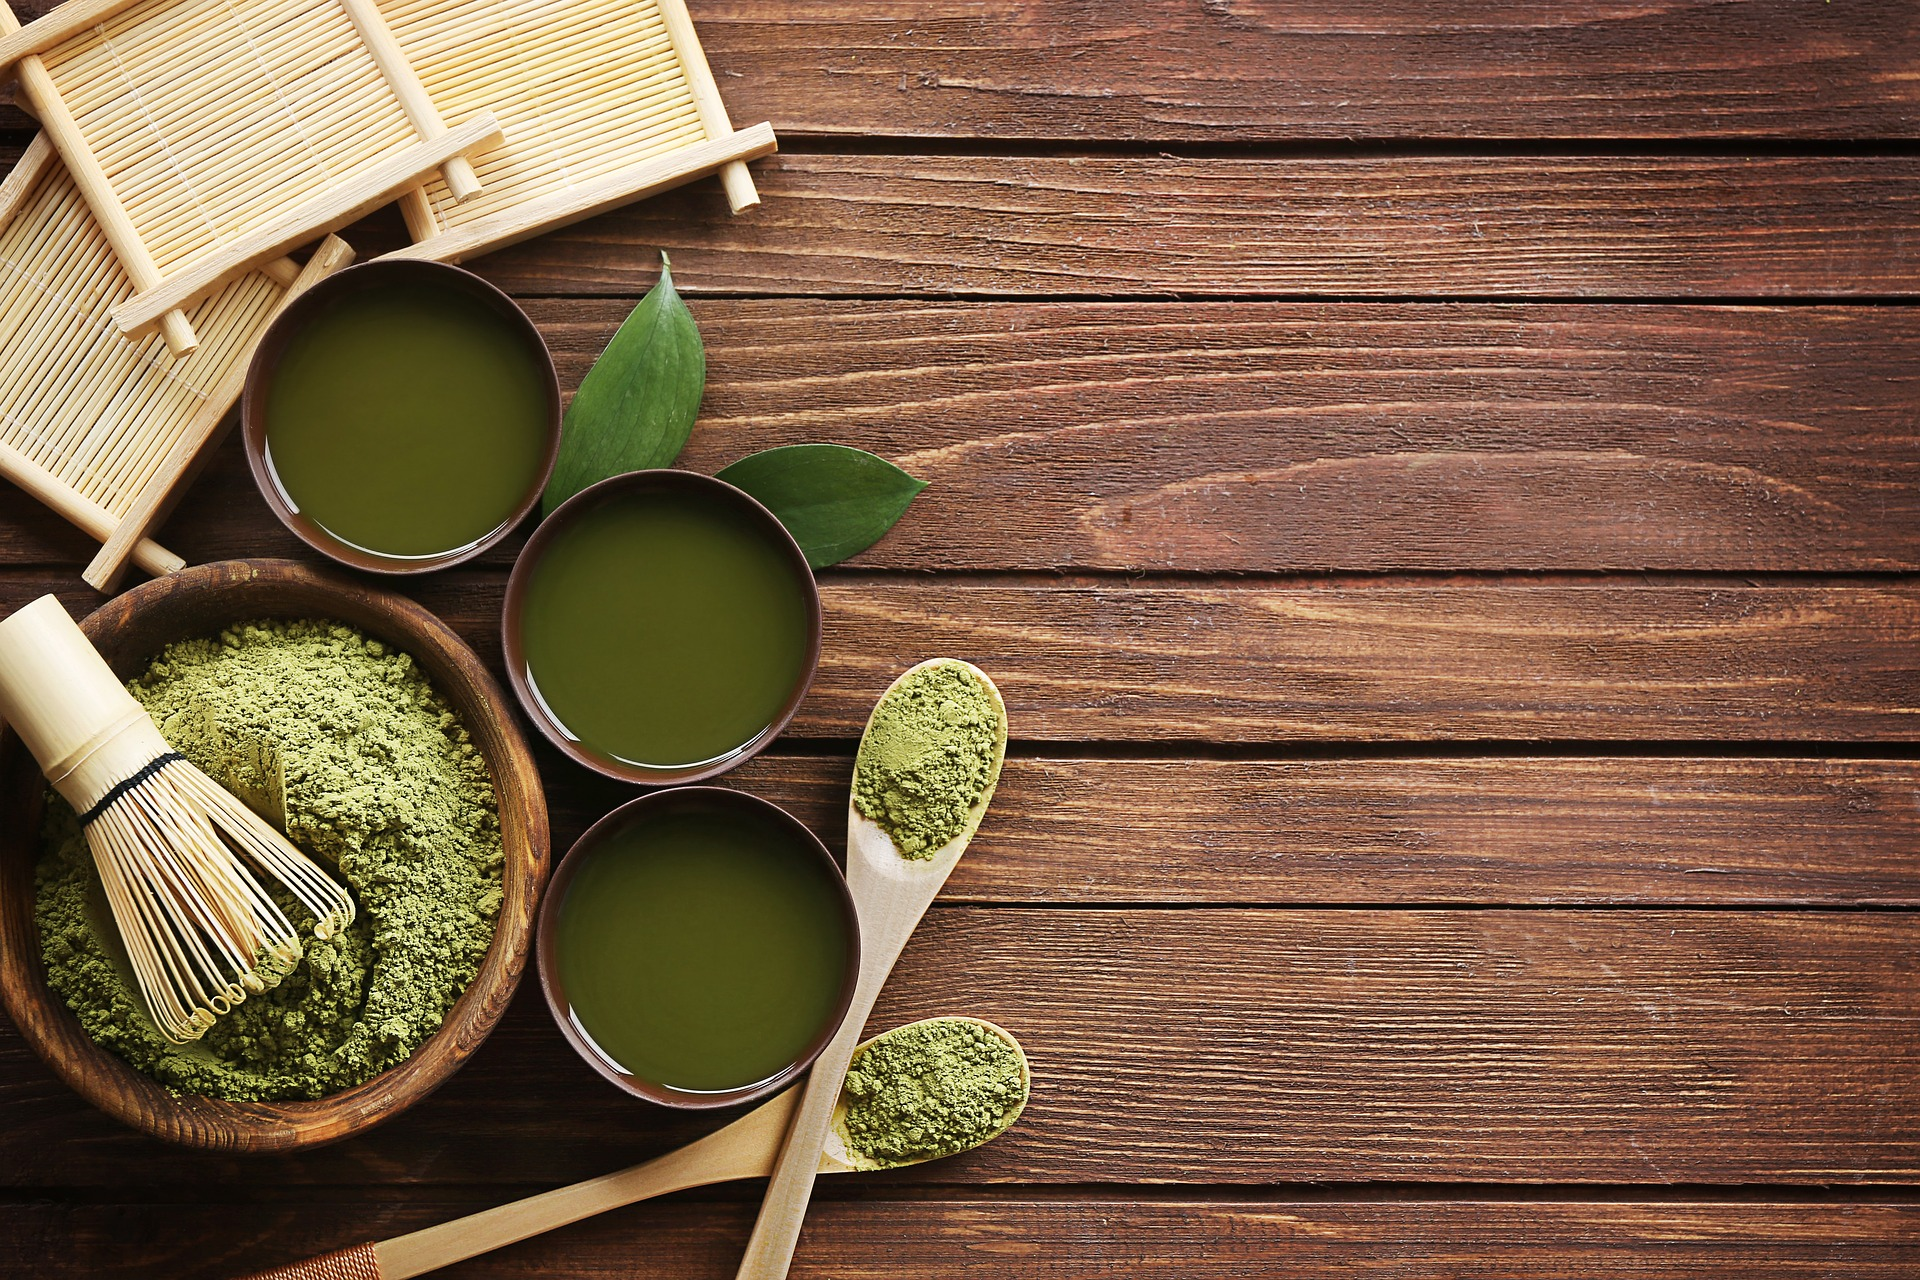 MATCHA TEA - Take your tea to the next level with this mindful boost!